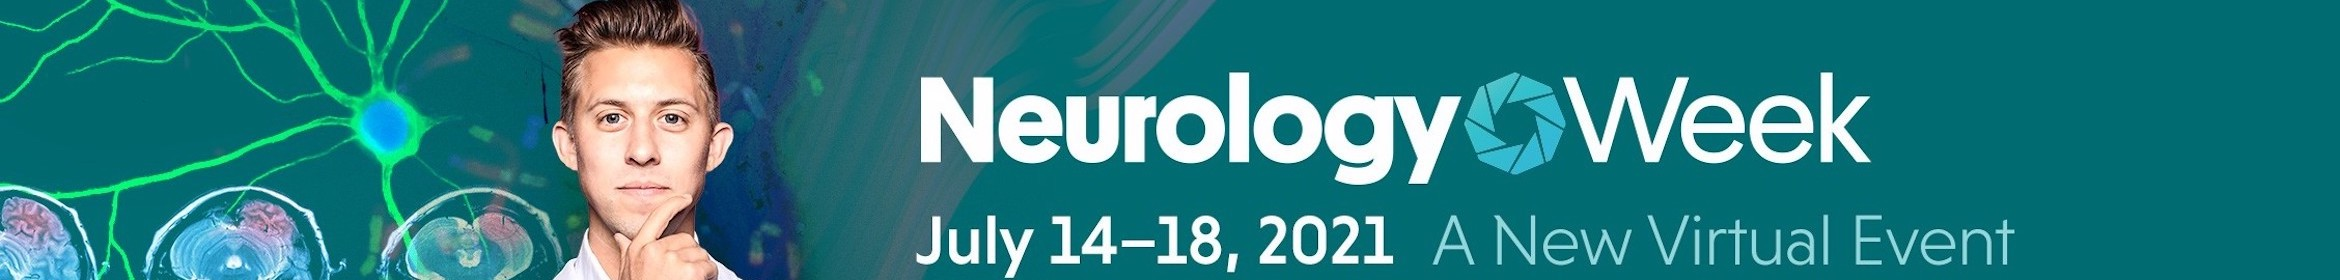 Neurology Week Main banner